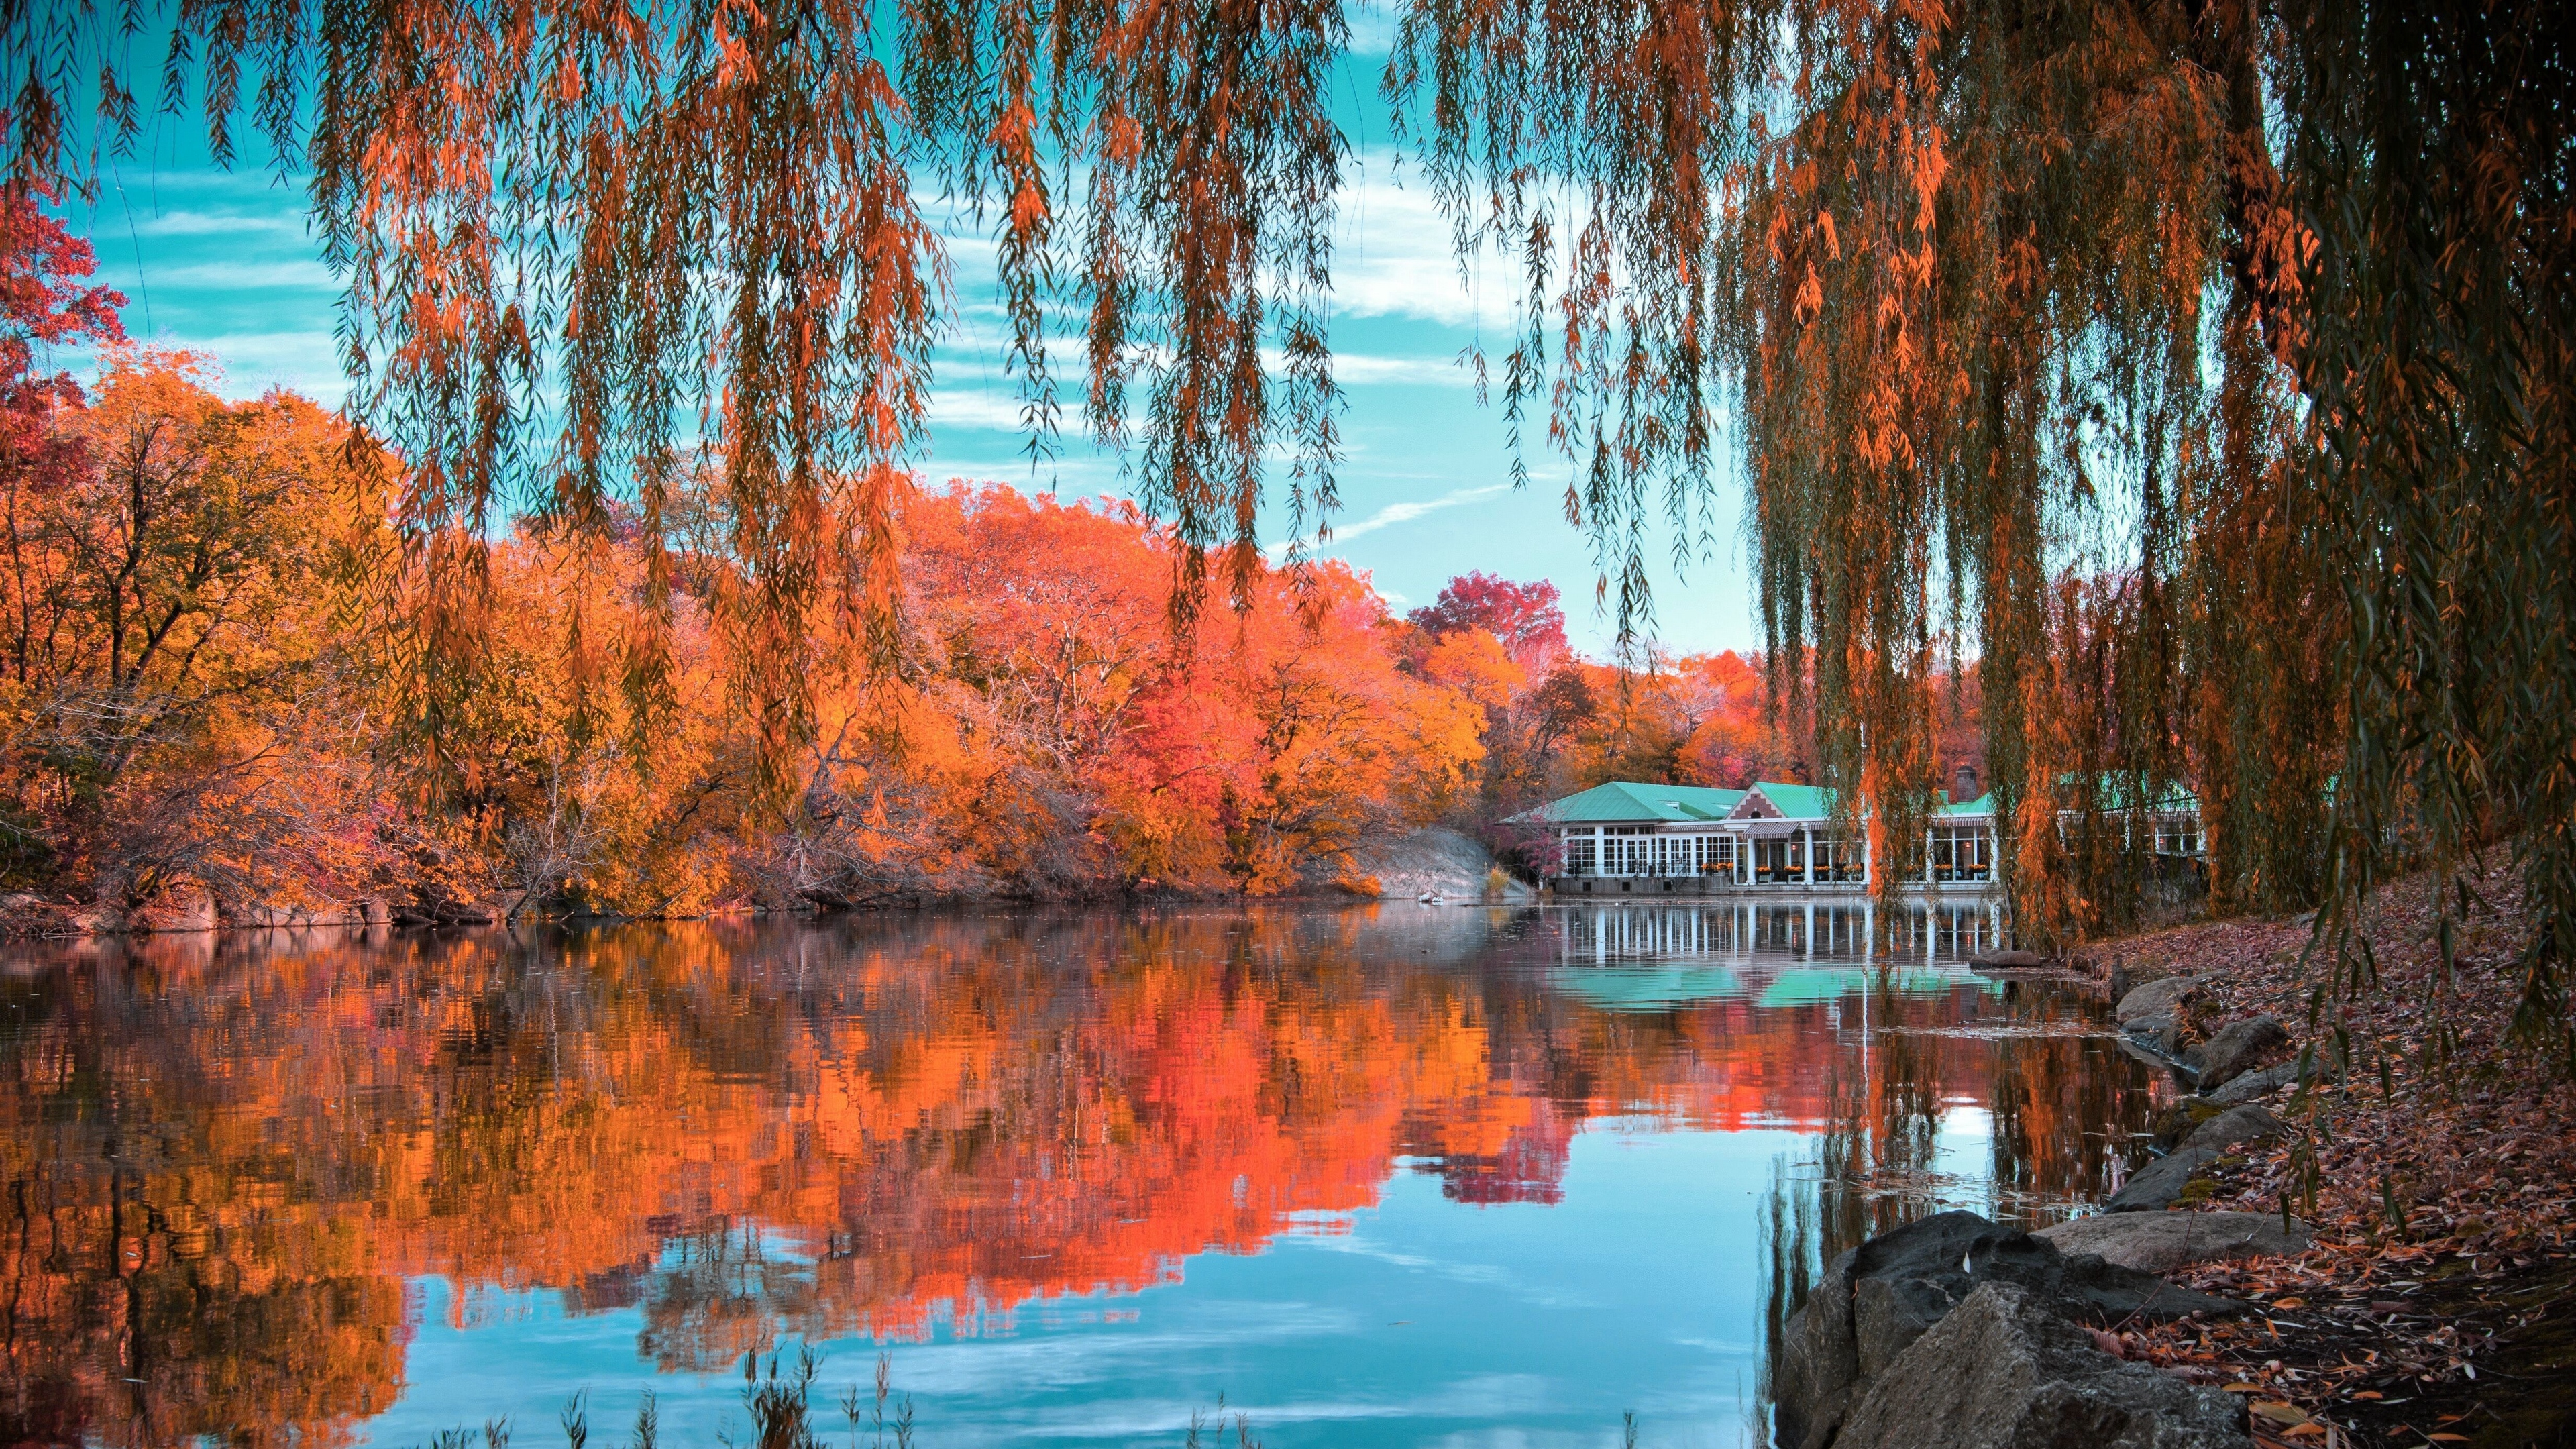 Download wallpapers 3840x2160 central park, new york, autumn